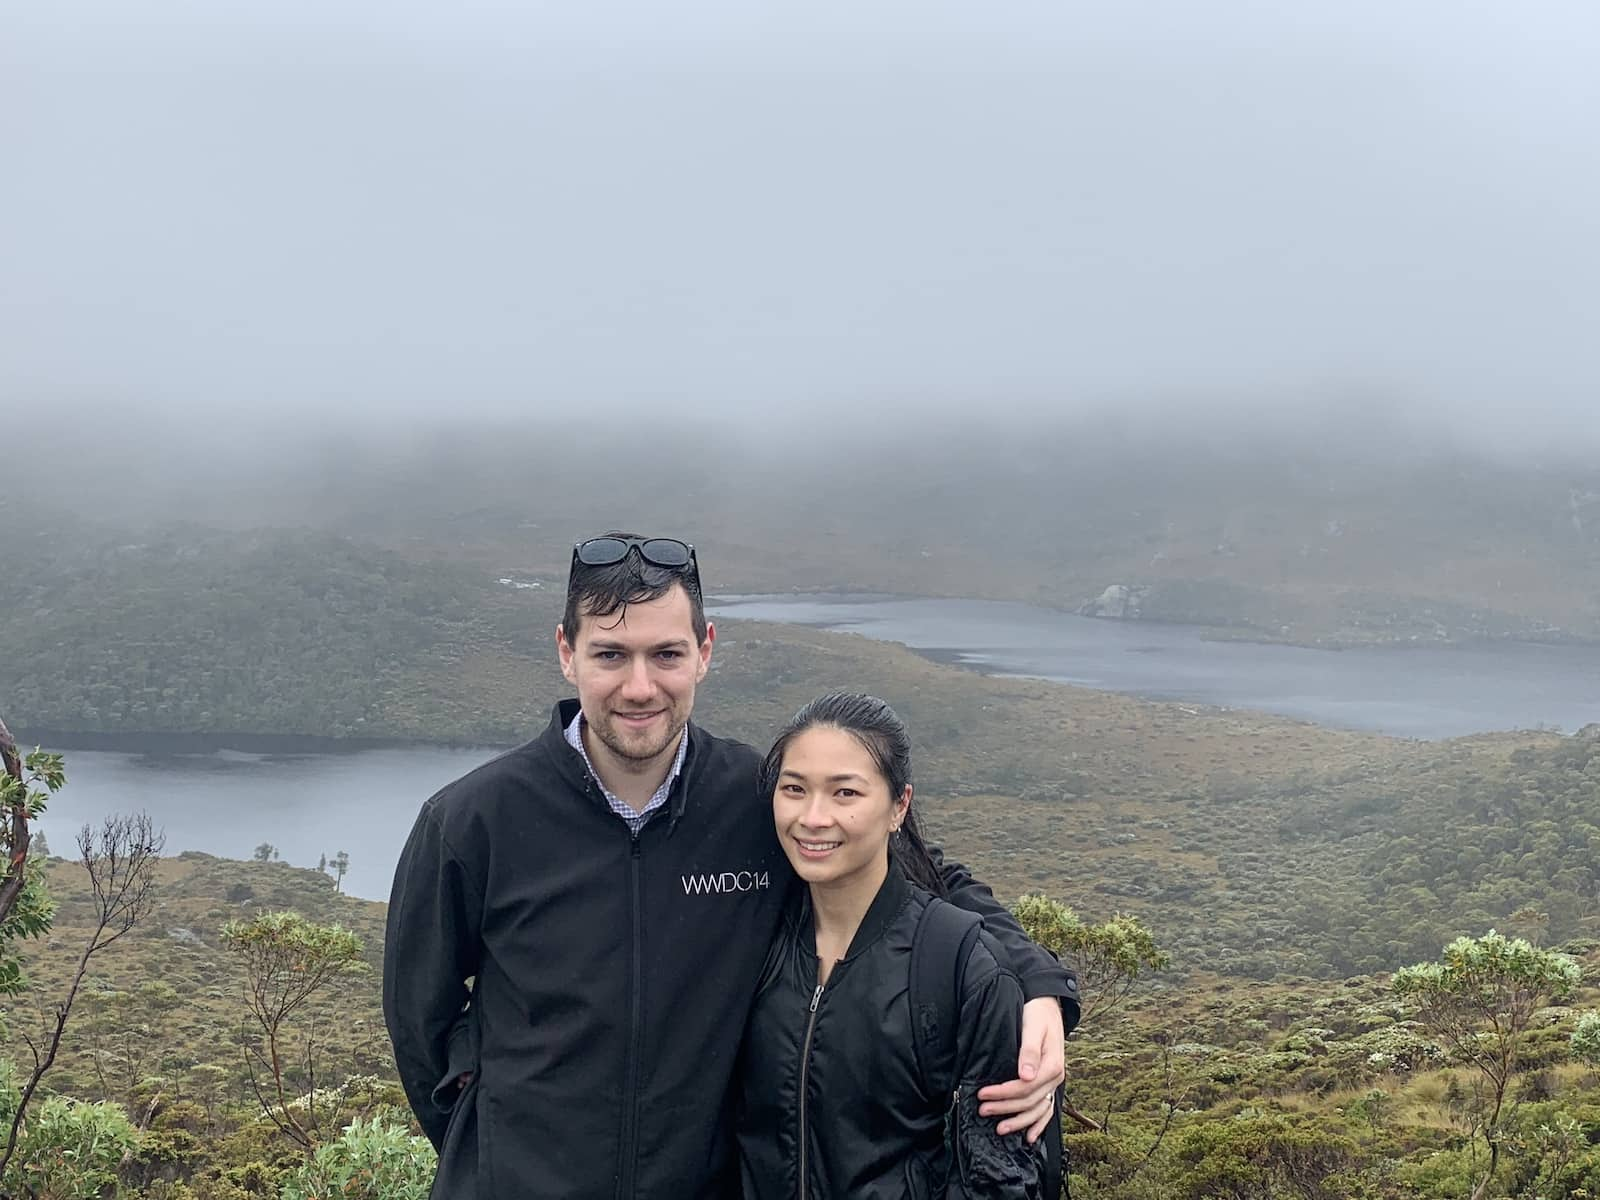 A man and woman with their arms around each other, with some lakes in the background. They are damp from the rain